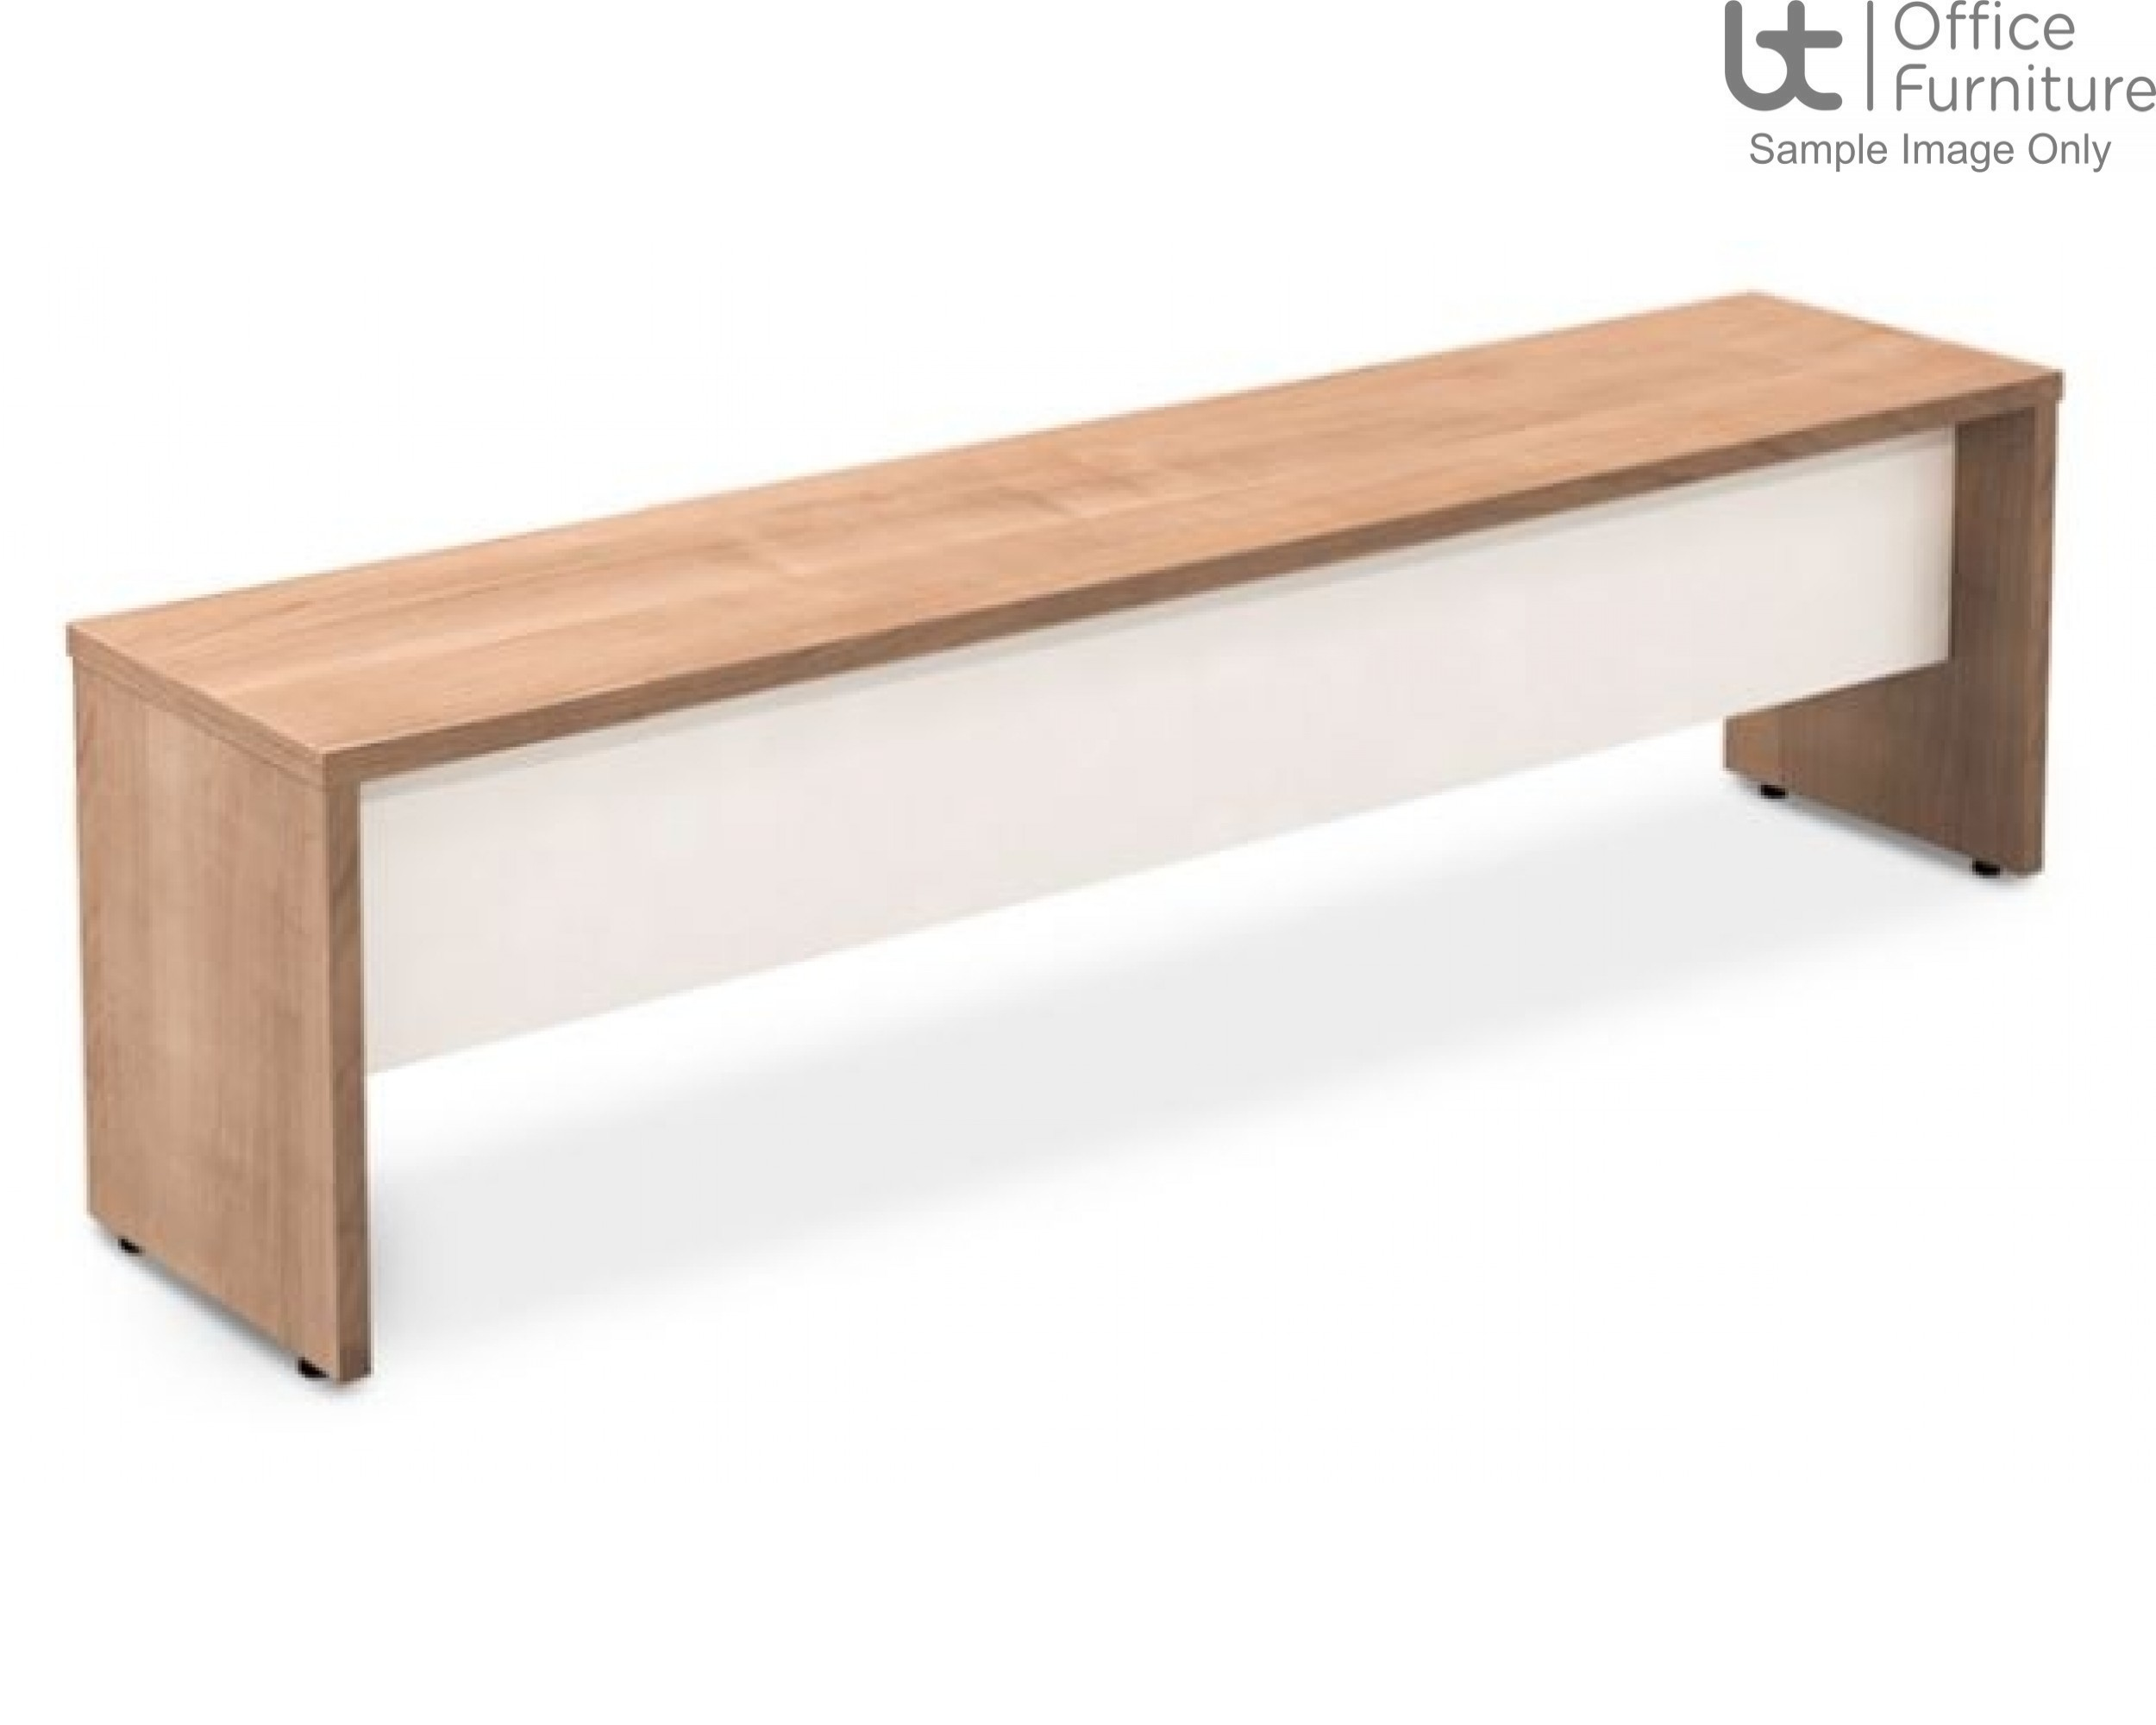 Robust Block Panel Frame Bench Seat W1400 x D350 x H410mm